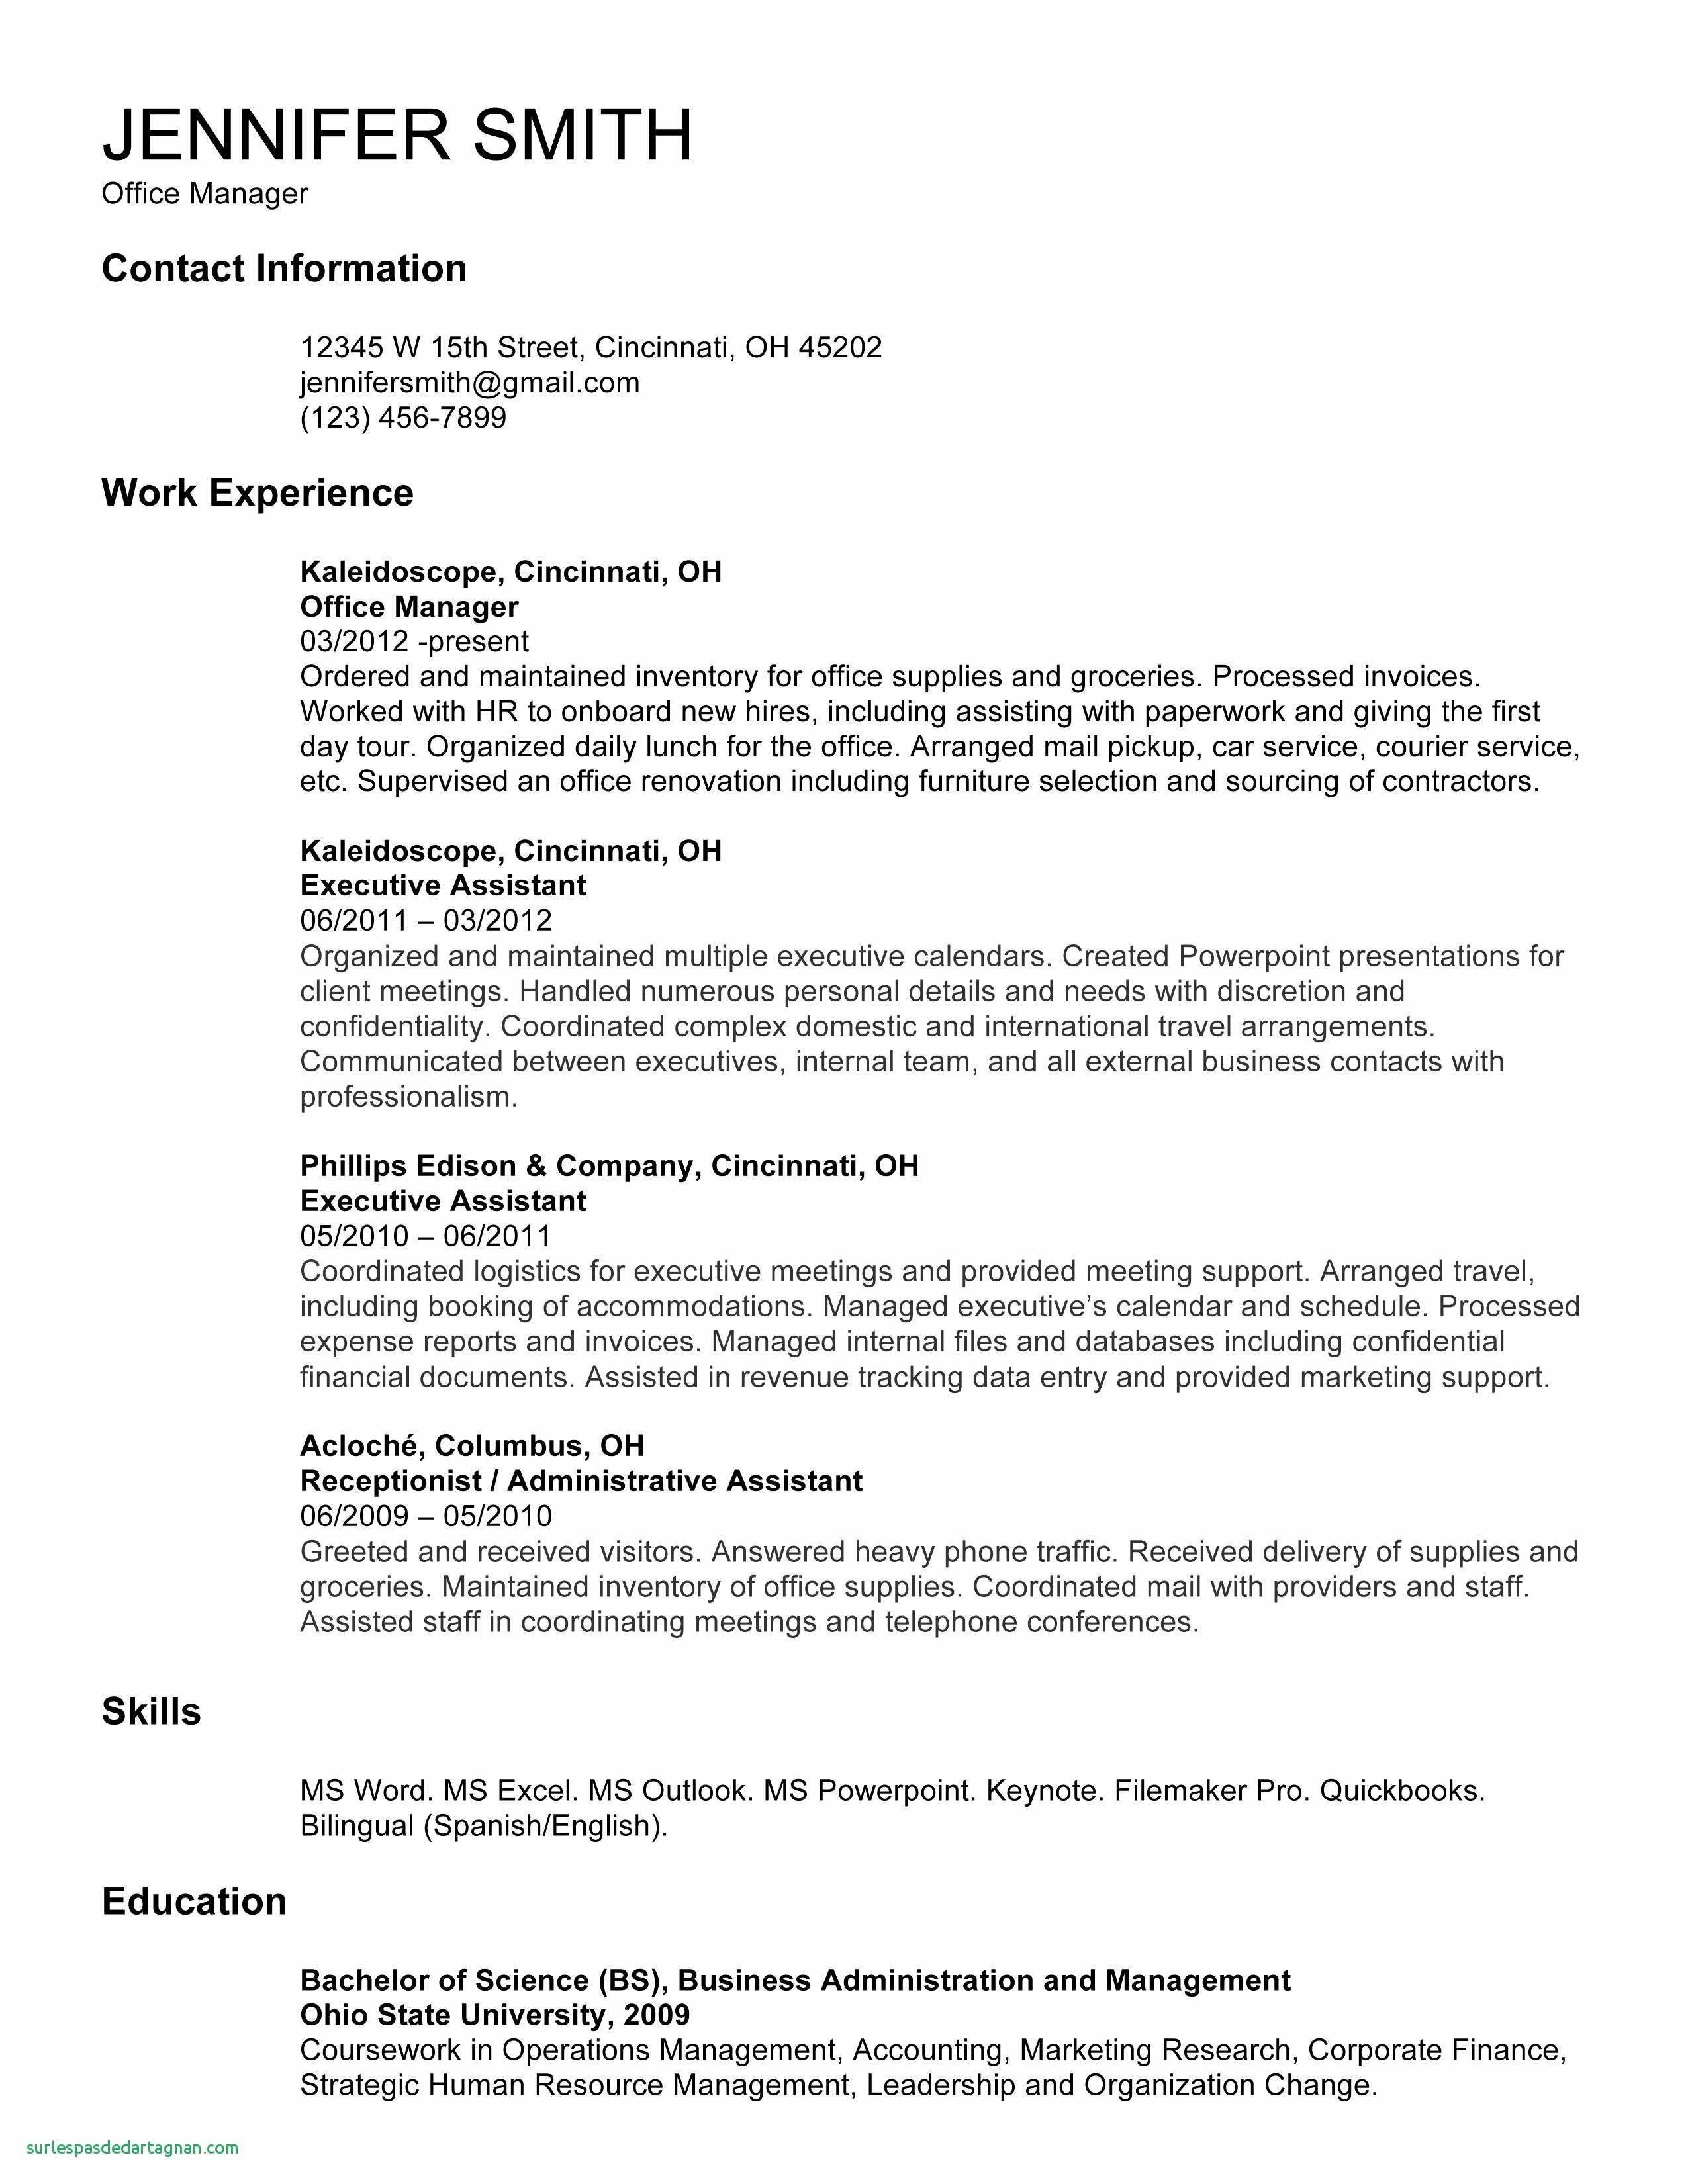 Teacher Resume Template Download - Resume Template Download Free Unique ¢Ë†Å¡ Resume Template Download